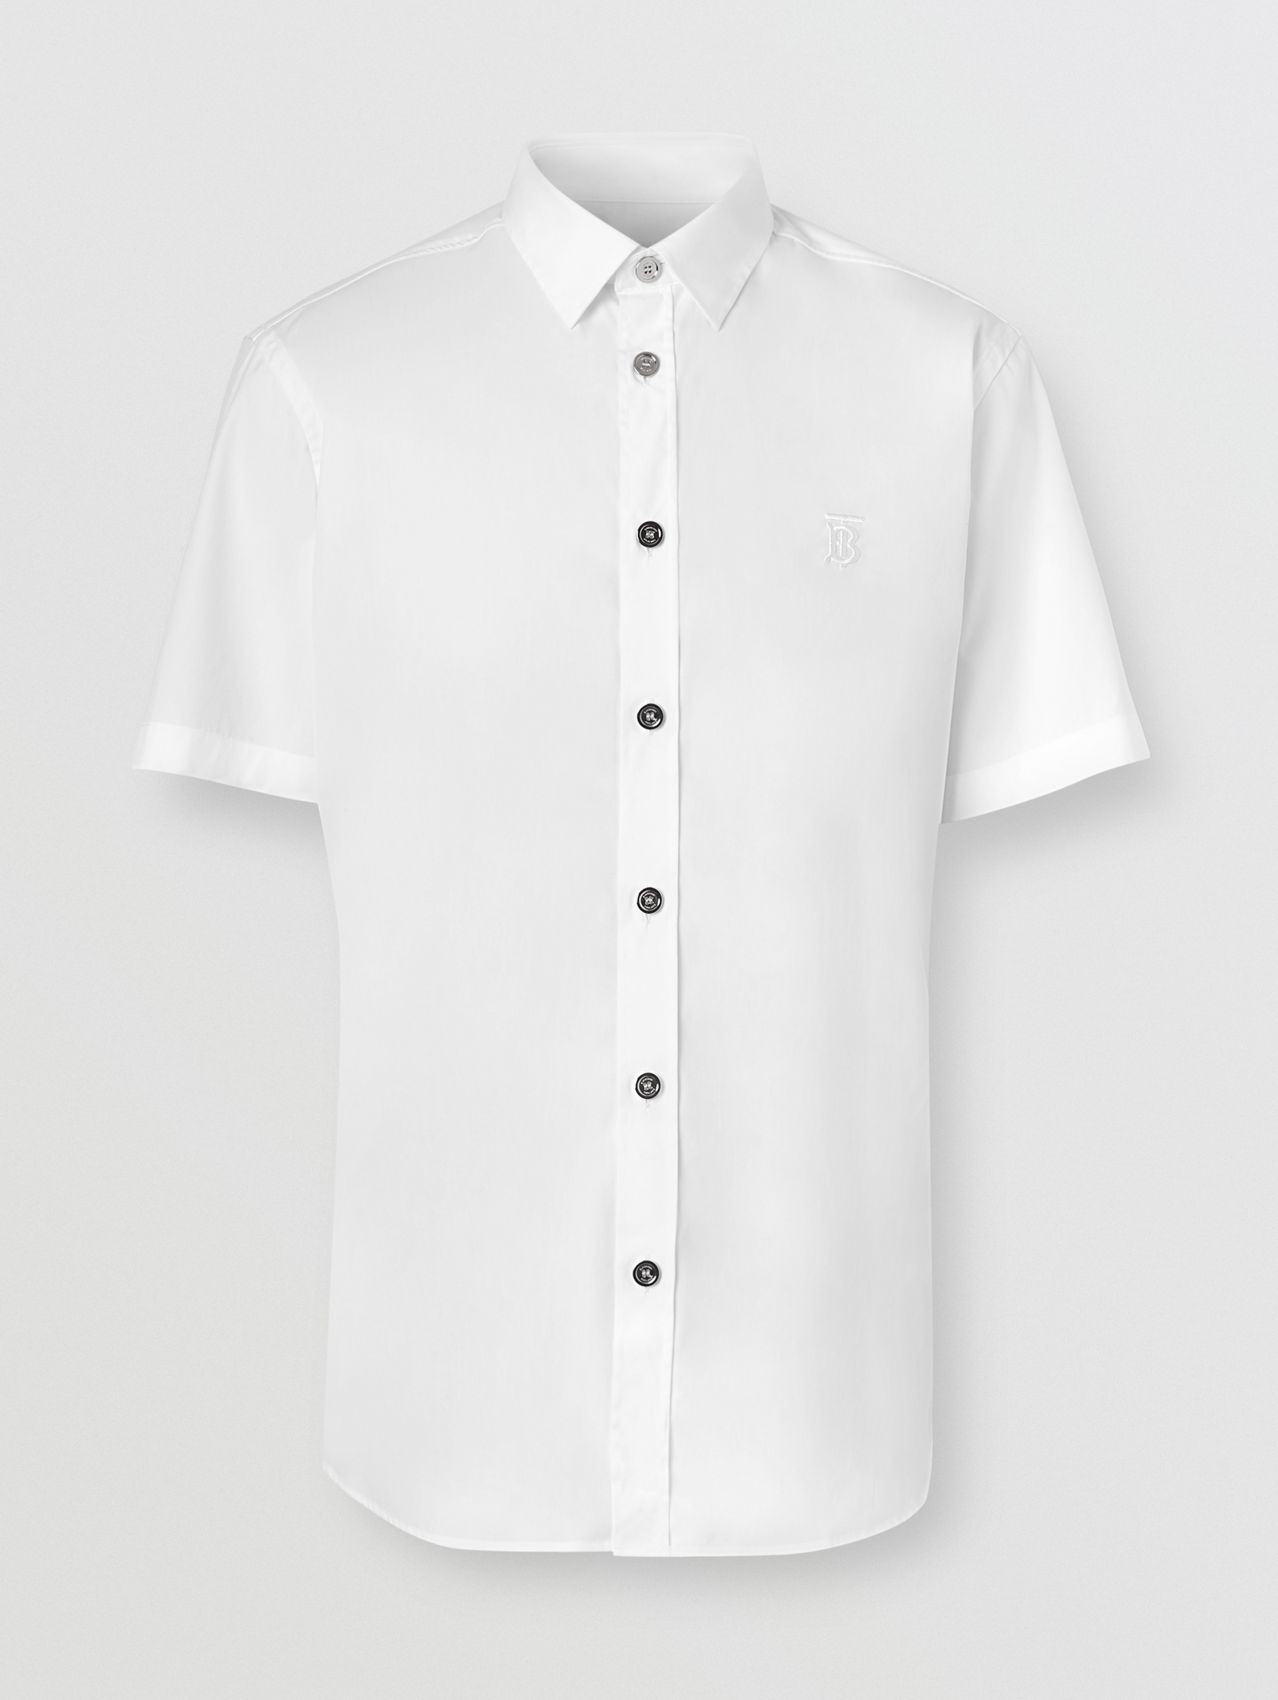 Short-sleeve Monogram Motif Stretch Cotton Shirt in White